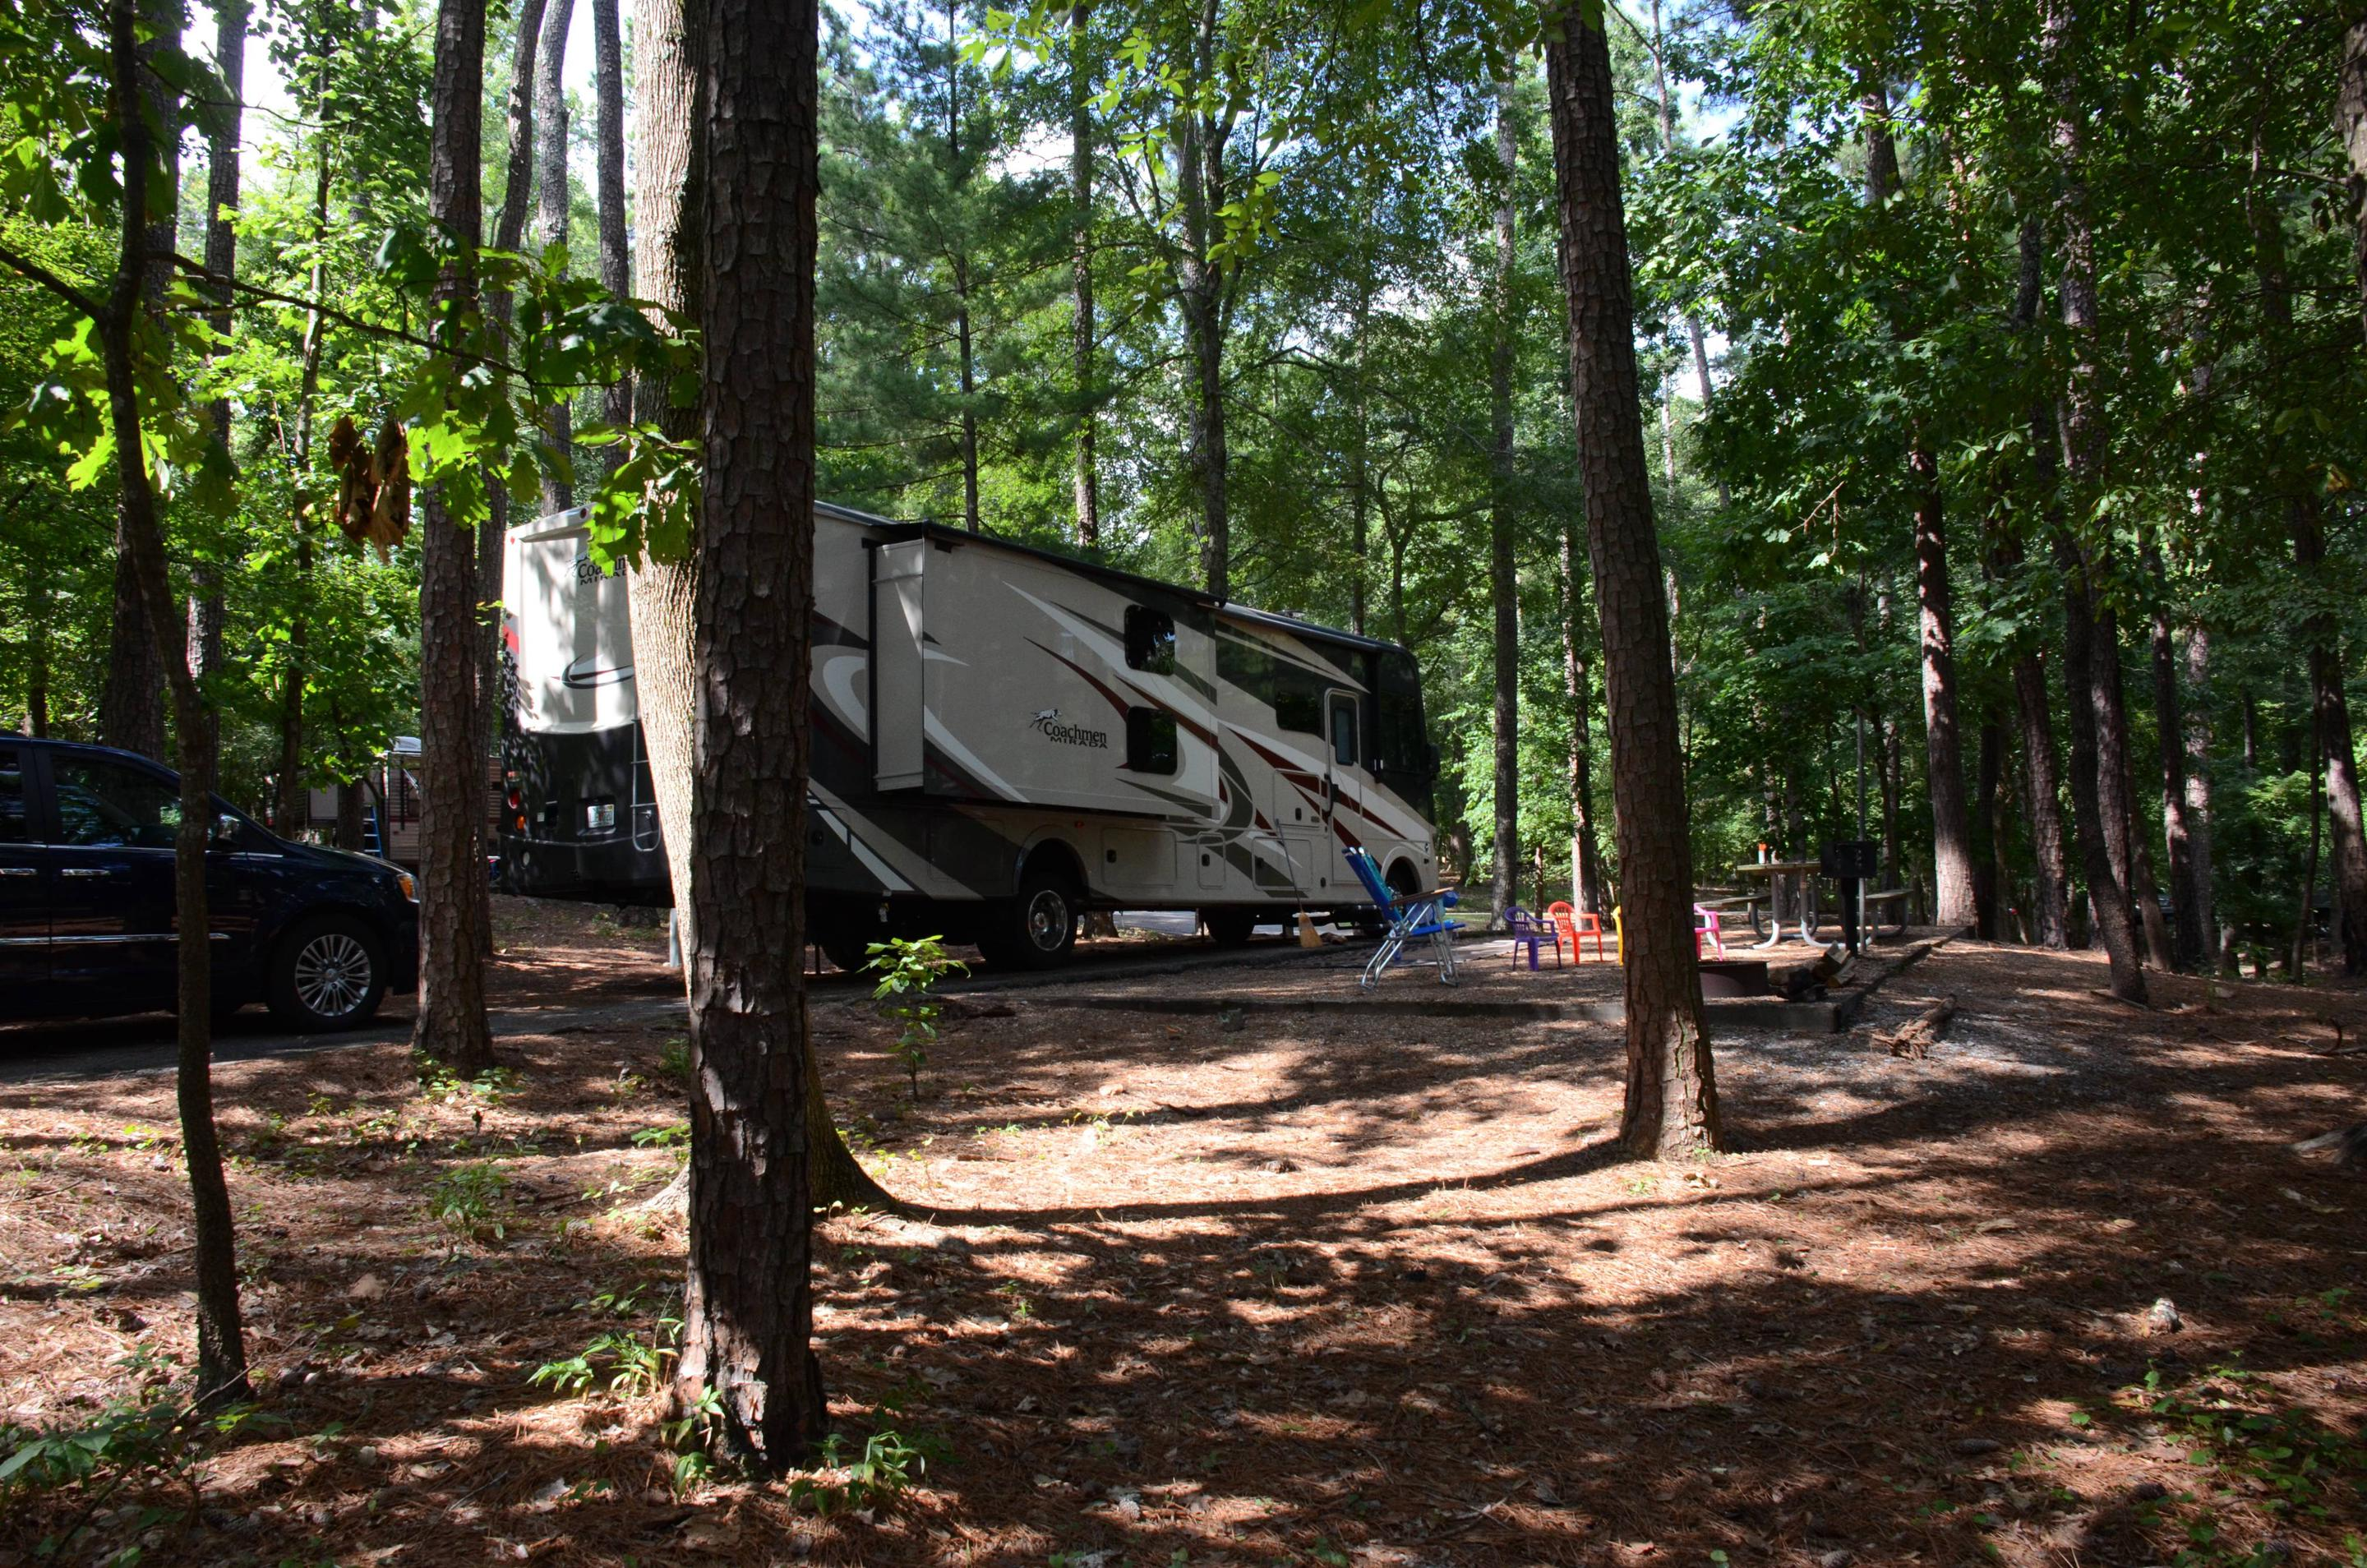 Awning-side clearance.McKinney Campground, campsite 19.